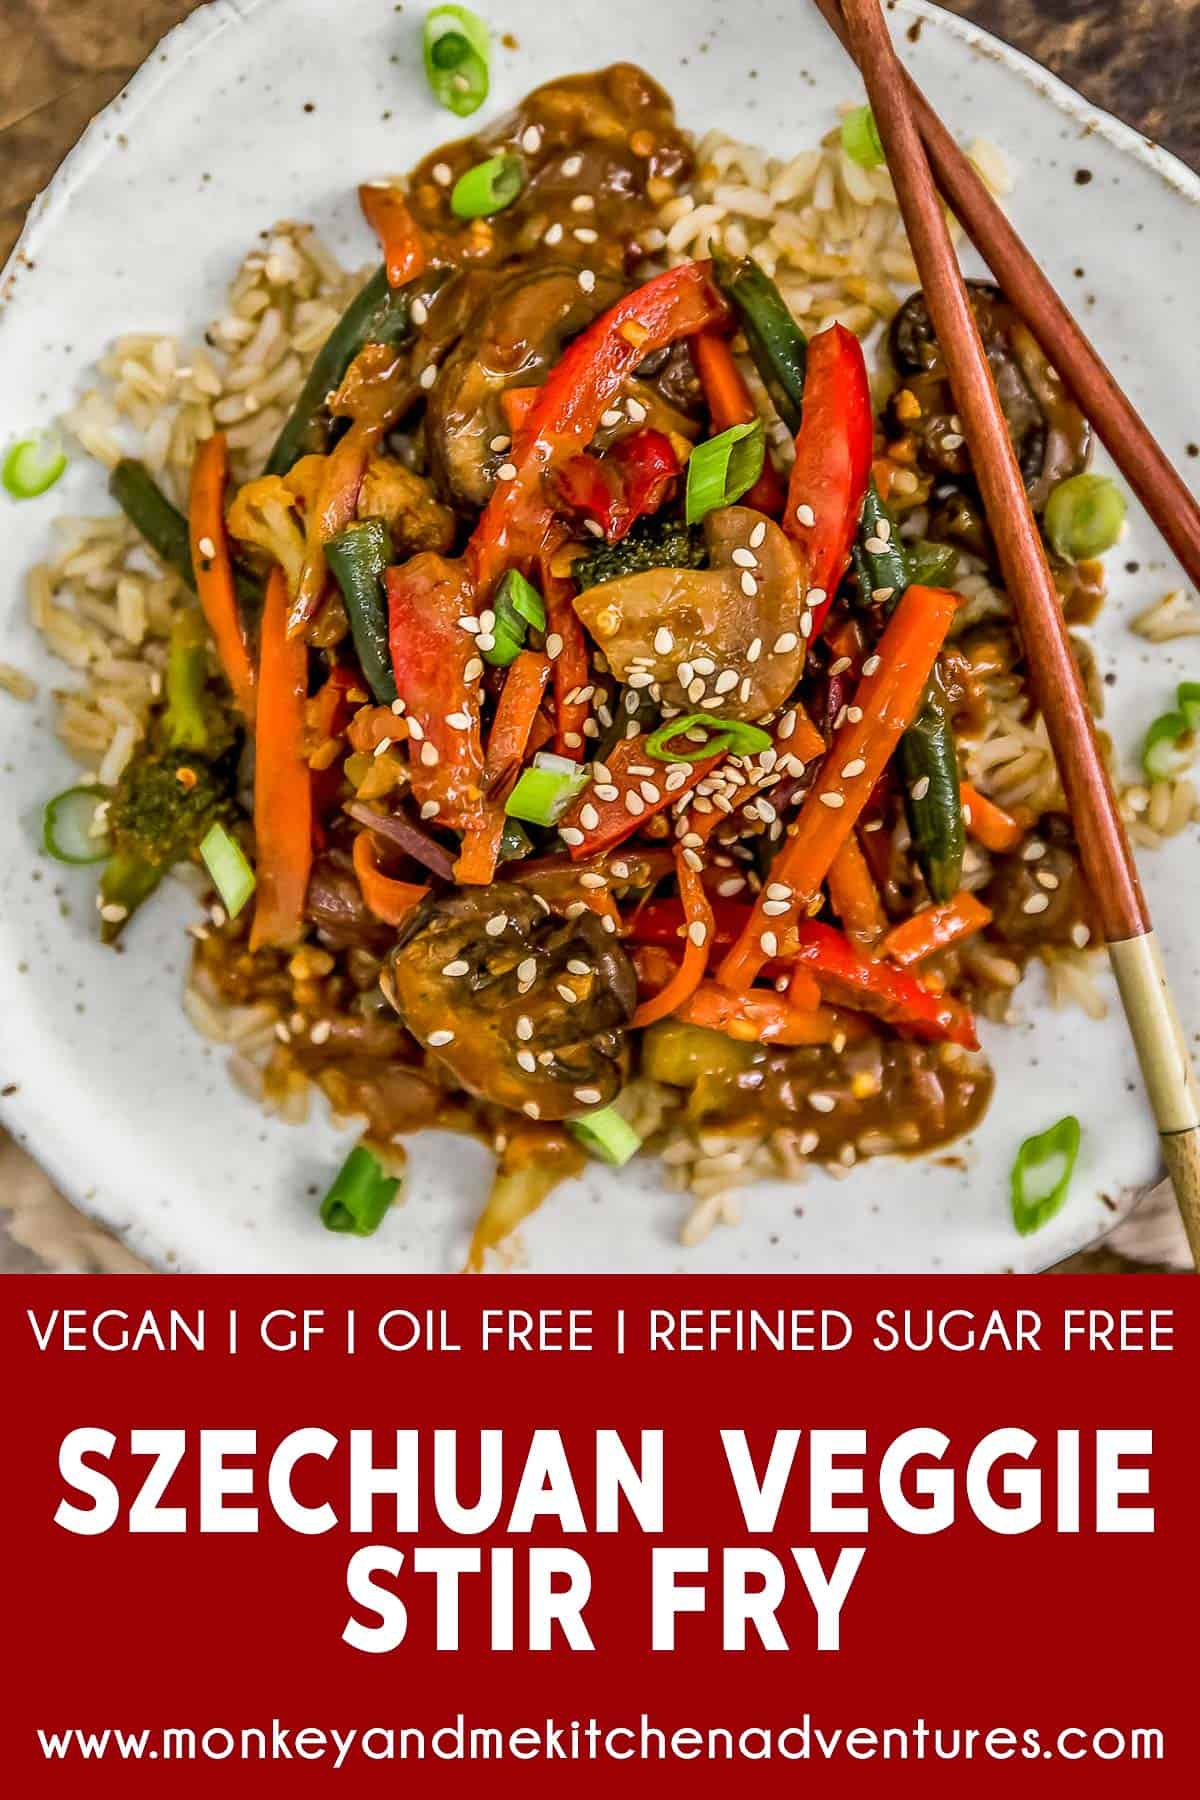 Szechuan Veggie Stir Fry with text description